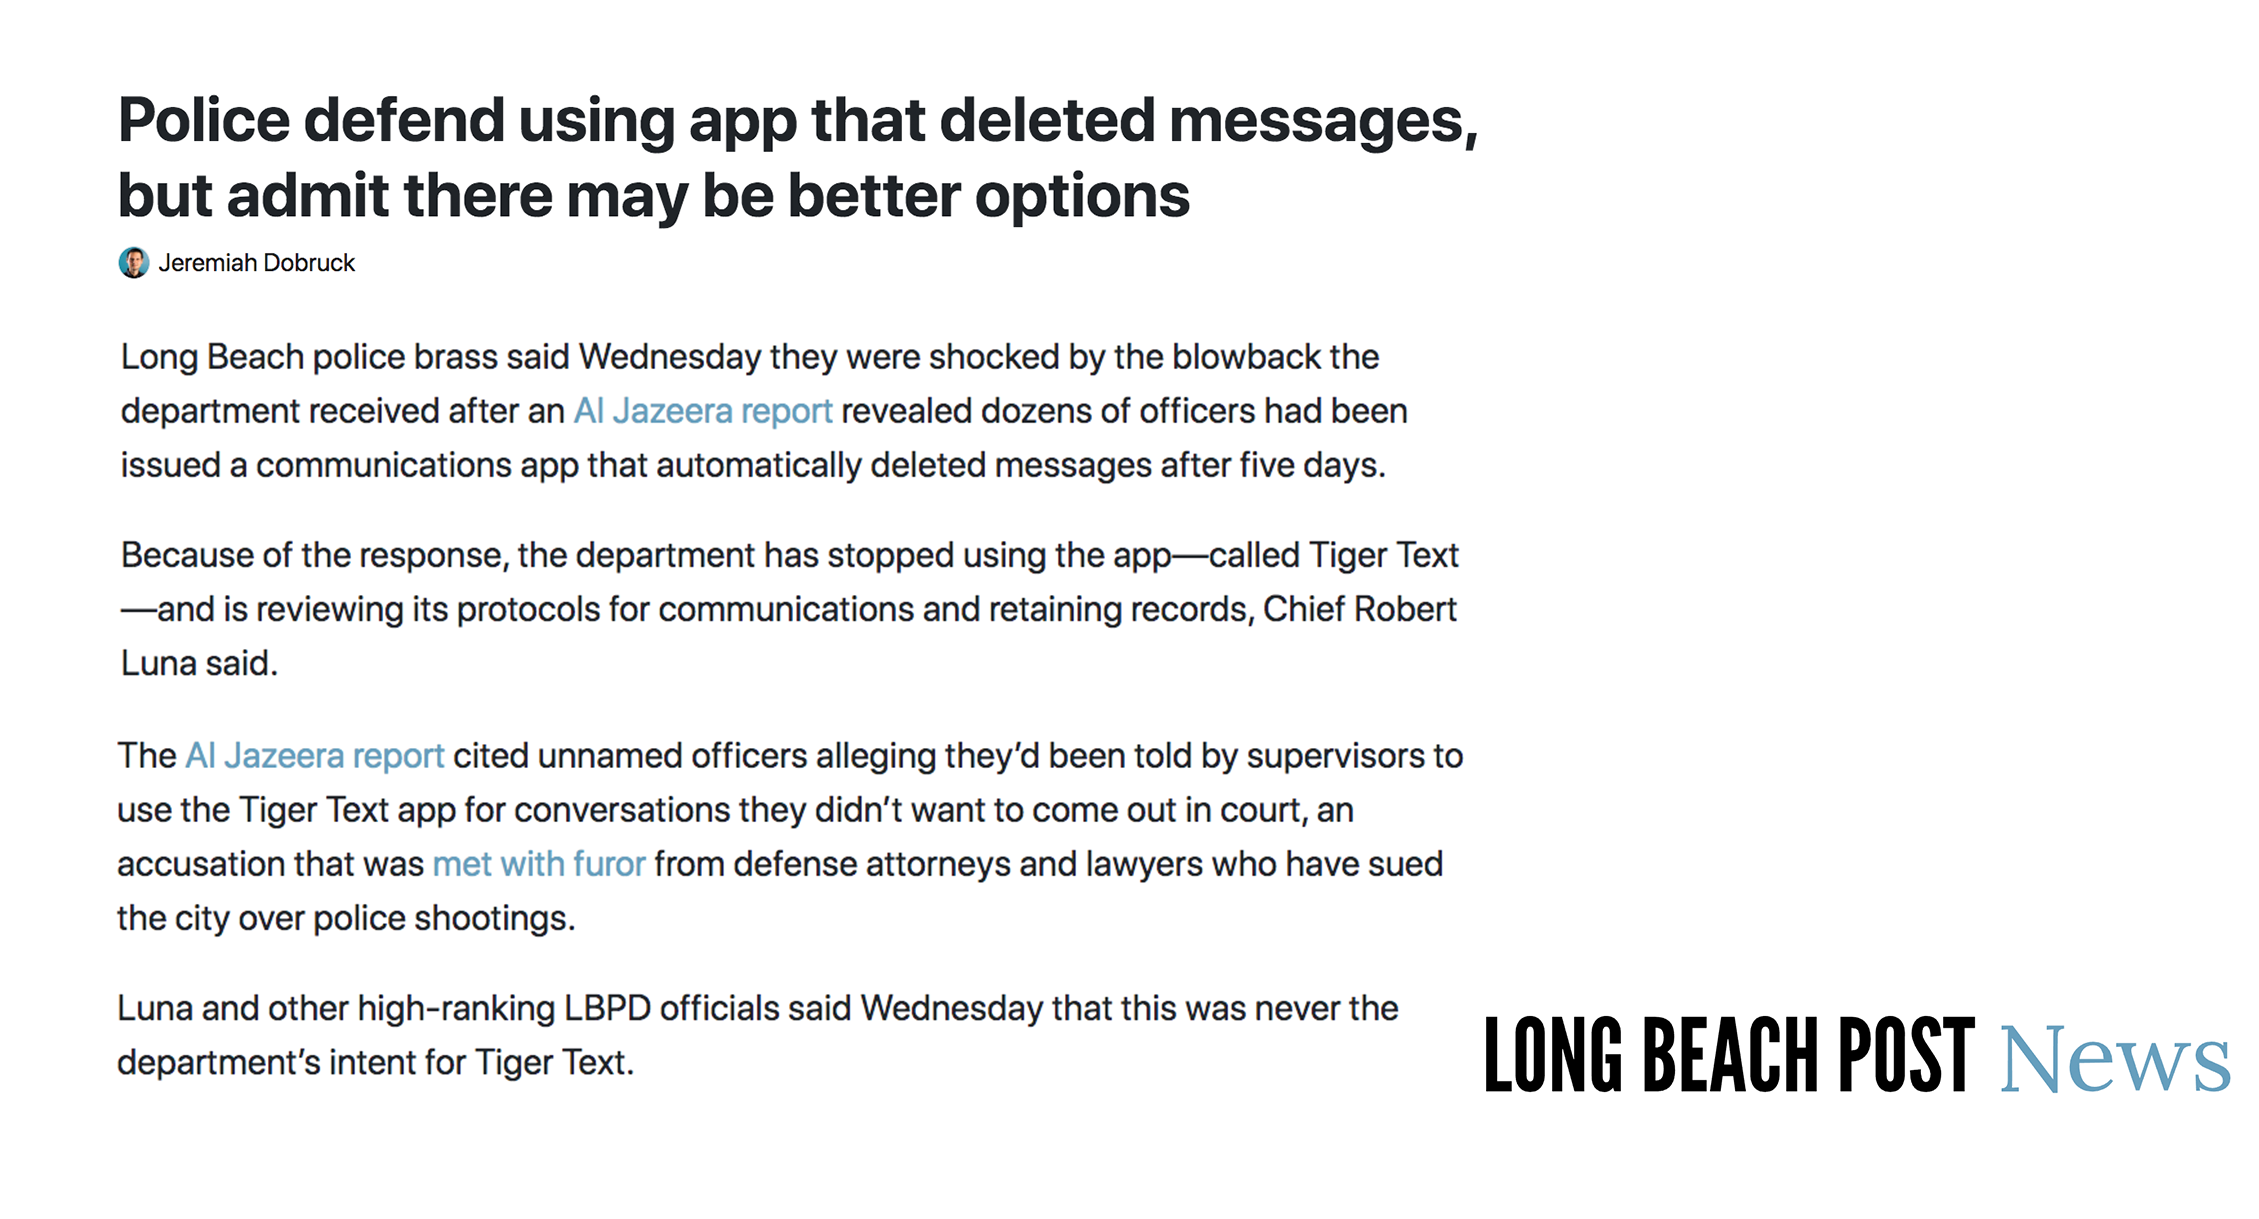 Police defend using app that deleted messages, but admit there may be better options